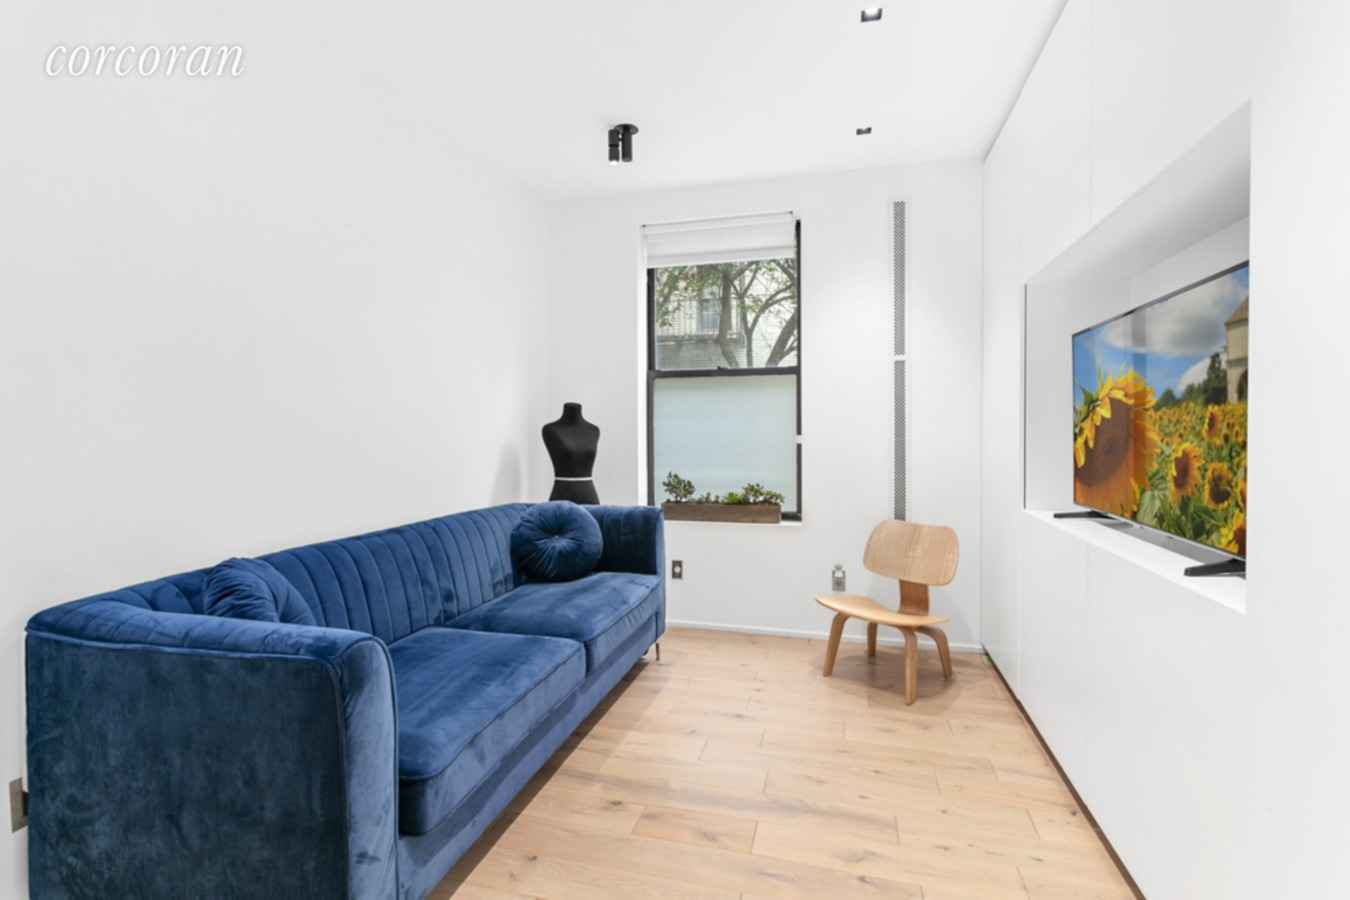 Apartment for sale at 21-37 33rd Street, Apt 1G